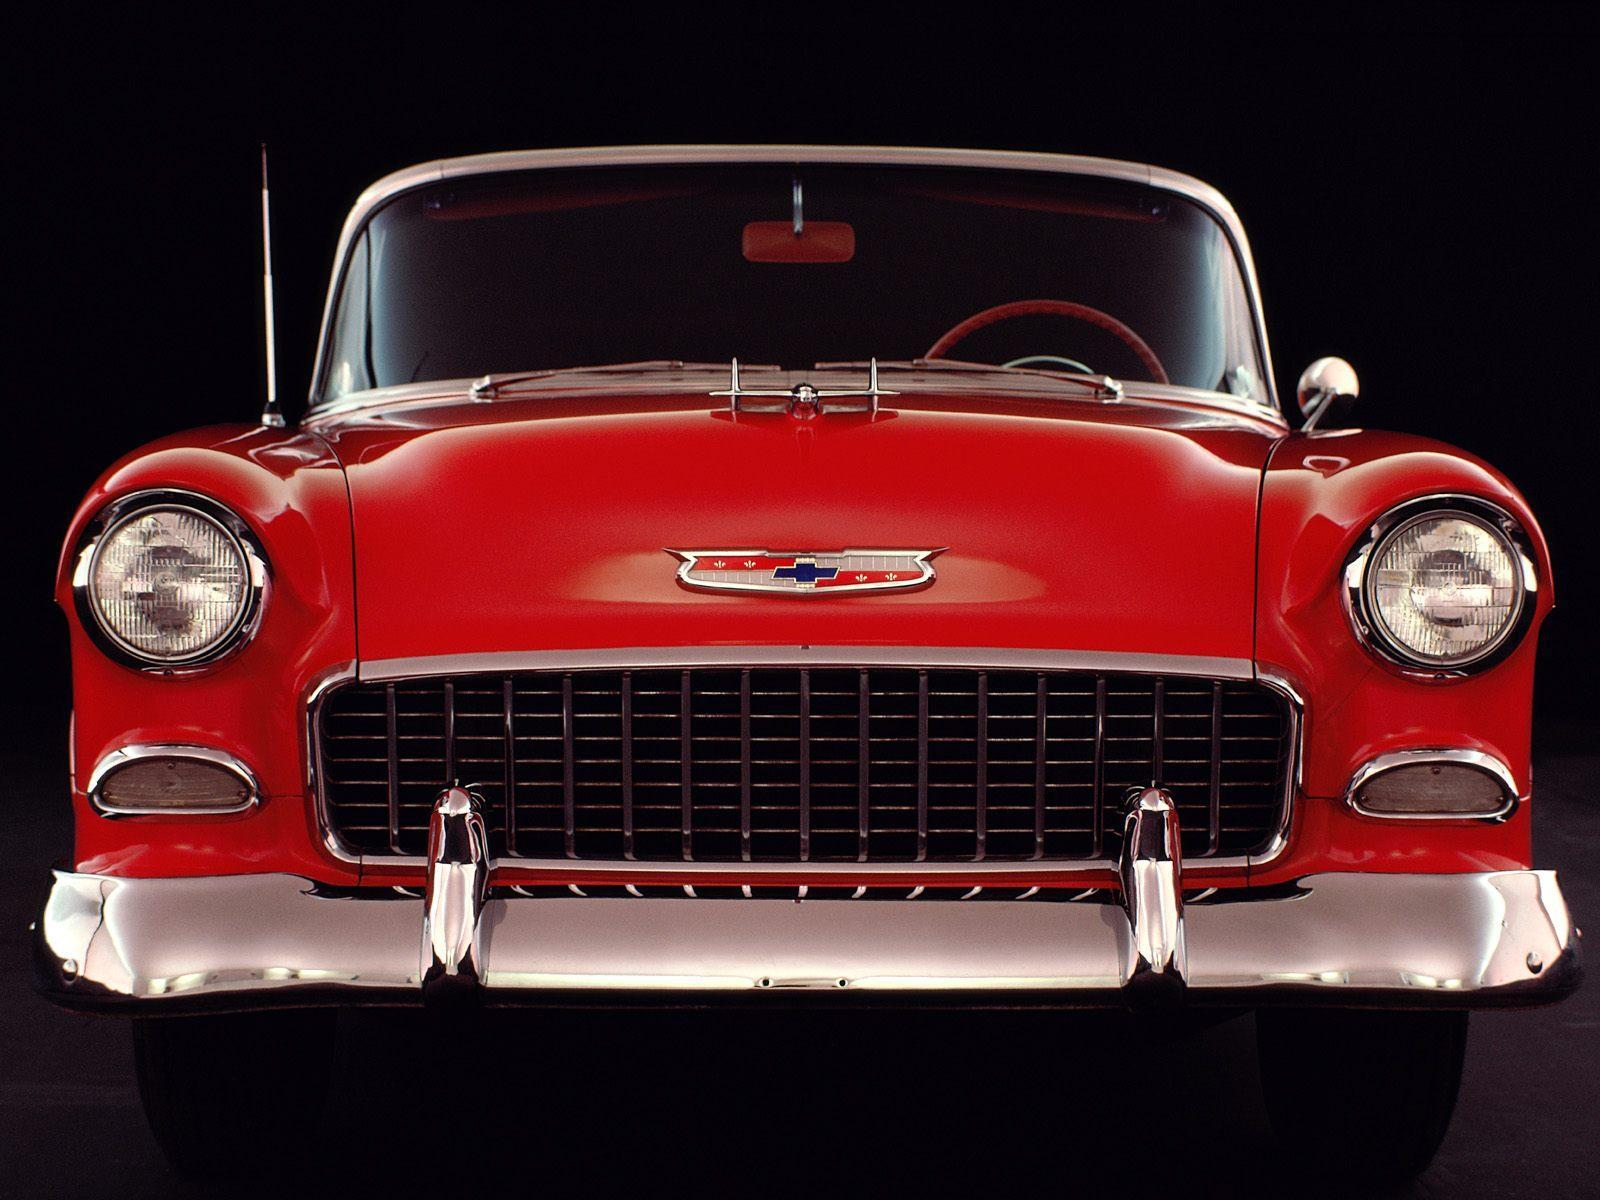 Classic Car Wallpapers 1600x1200